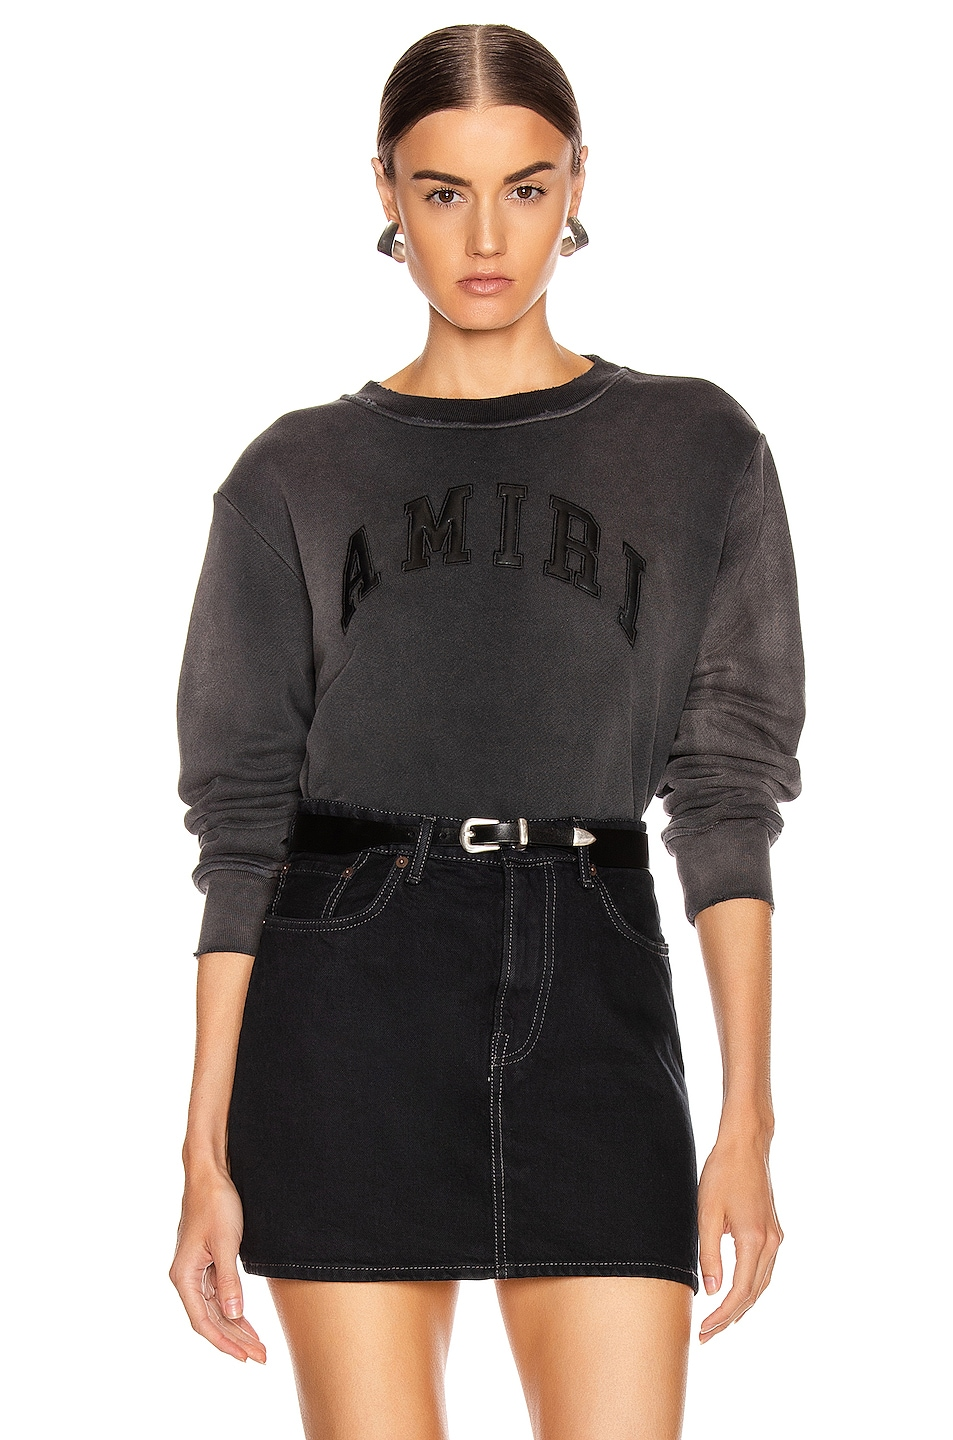 Image 1 of Amiri College Tonal Crewneck Sweatshirt in Washed Black